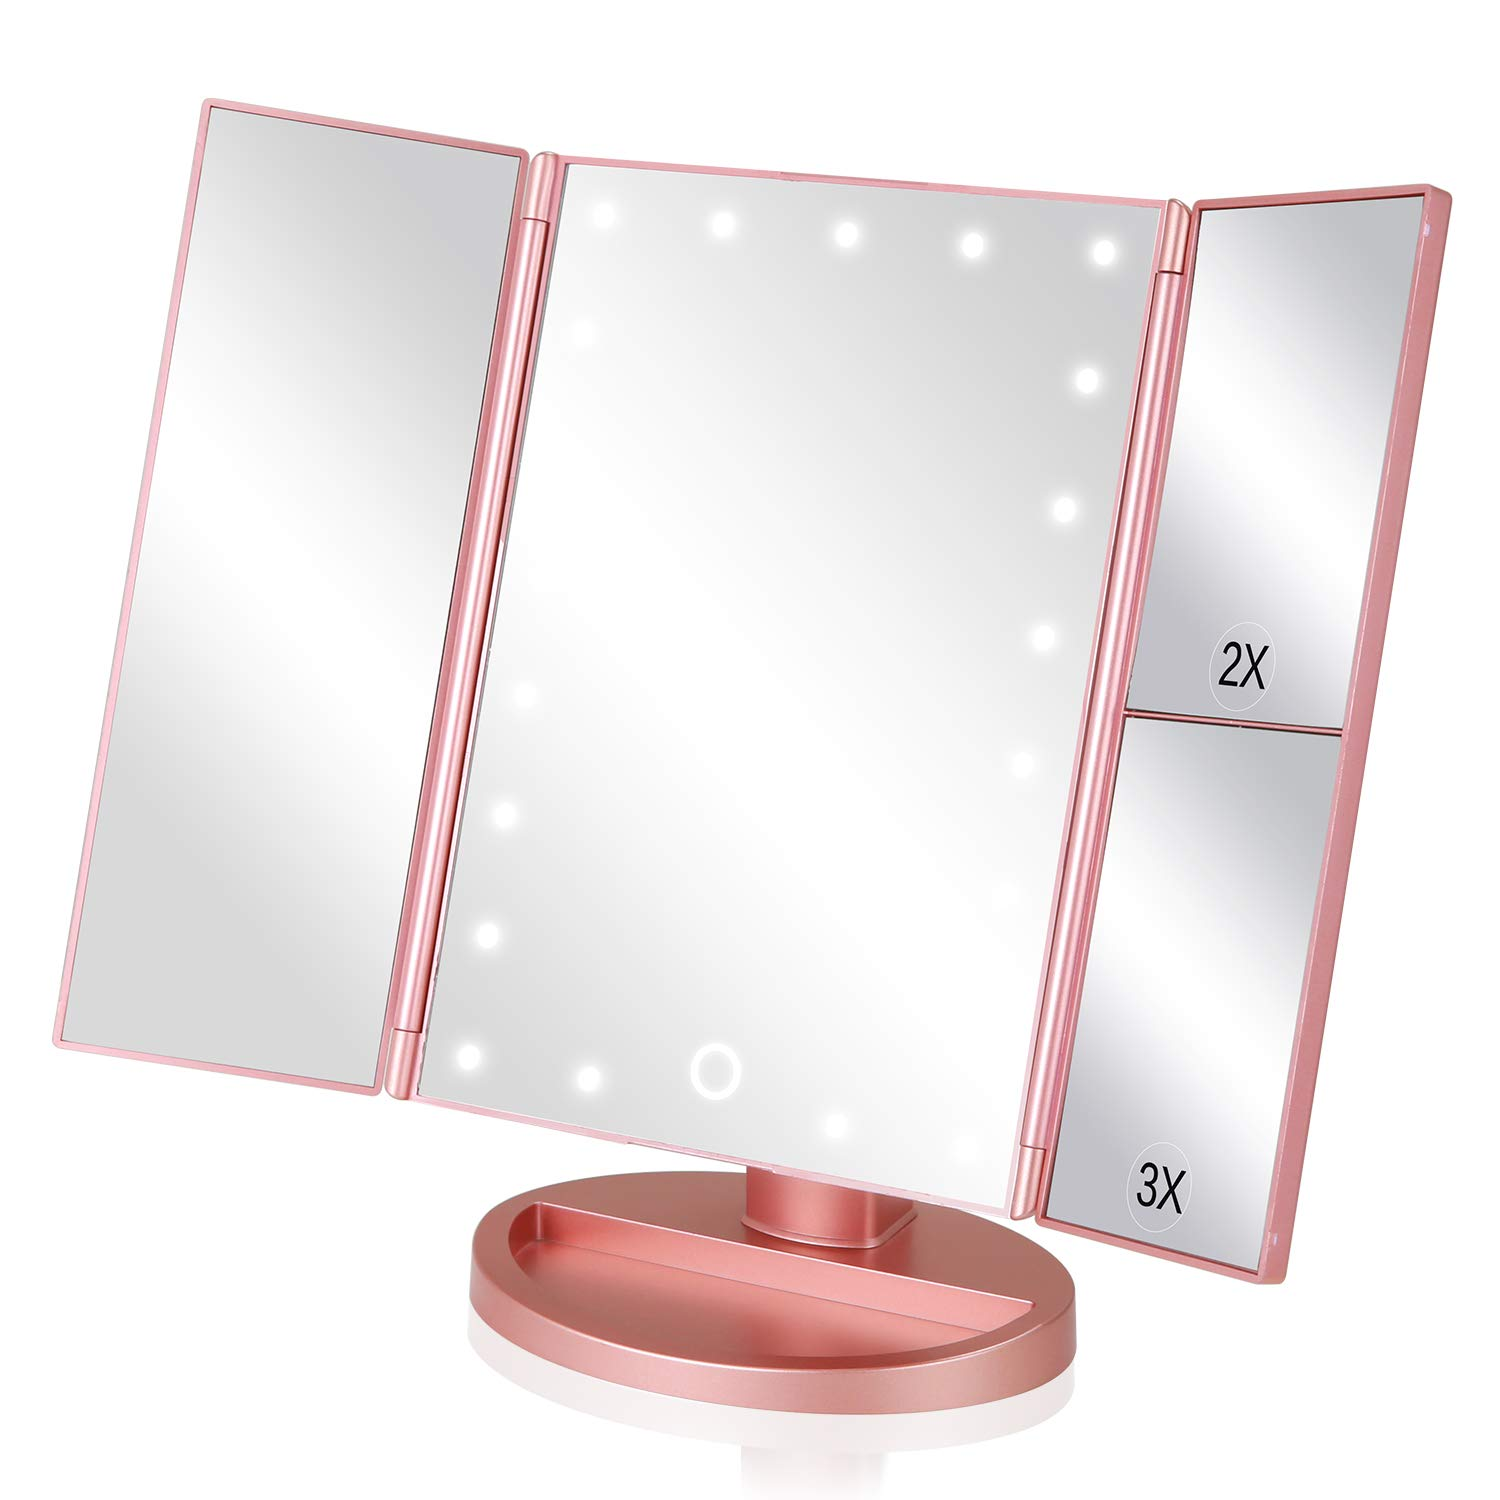 EASEHOLD Lighted Makeup Mirror Tri-Fold Dimmable 21 LED Lights Vanity 2X 3X Magnifying 180 Degree Adjustable with Touch Screen Dual Power Supply Countertop Cosmetic Mirror